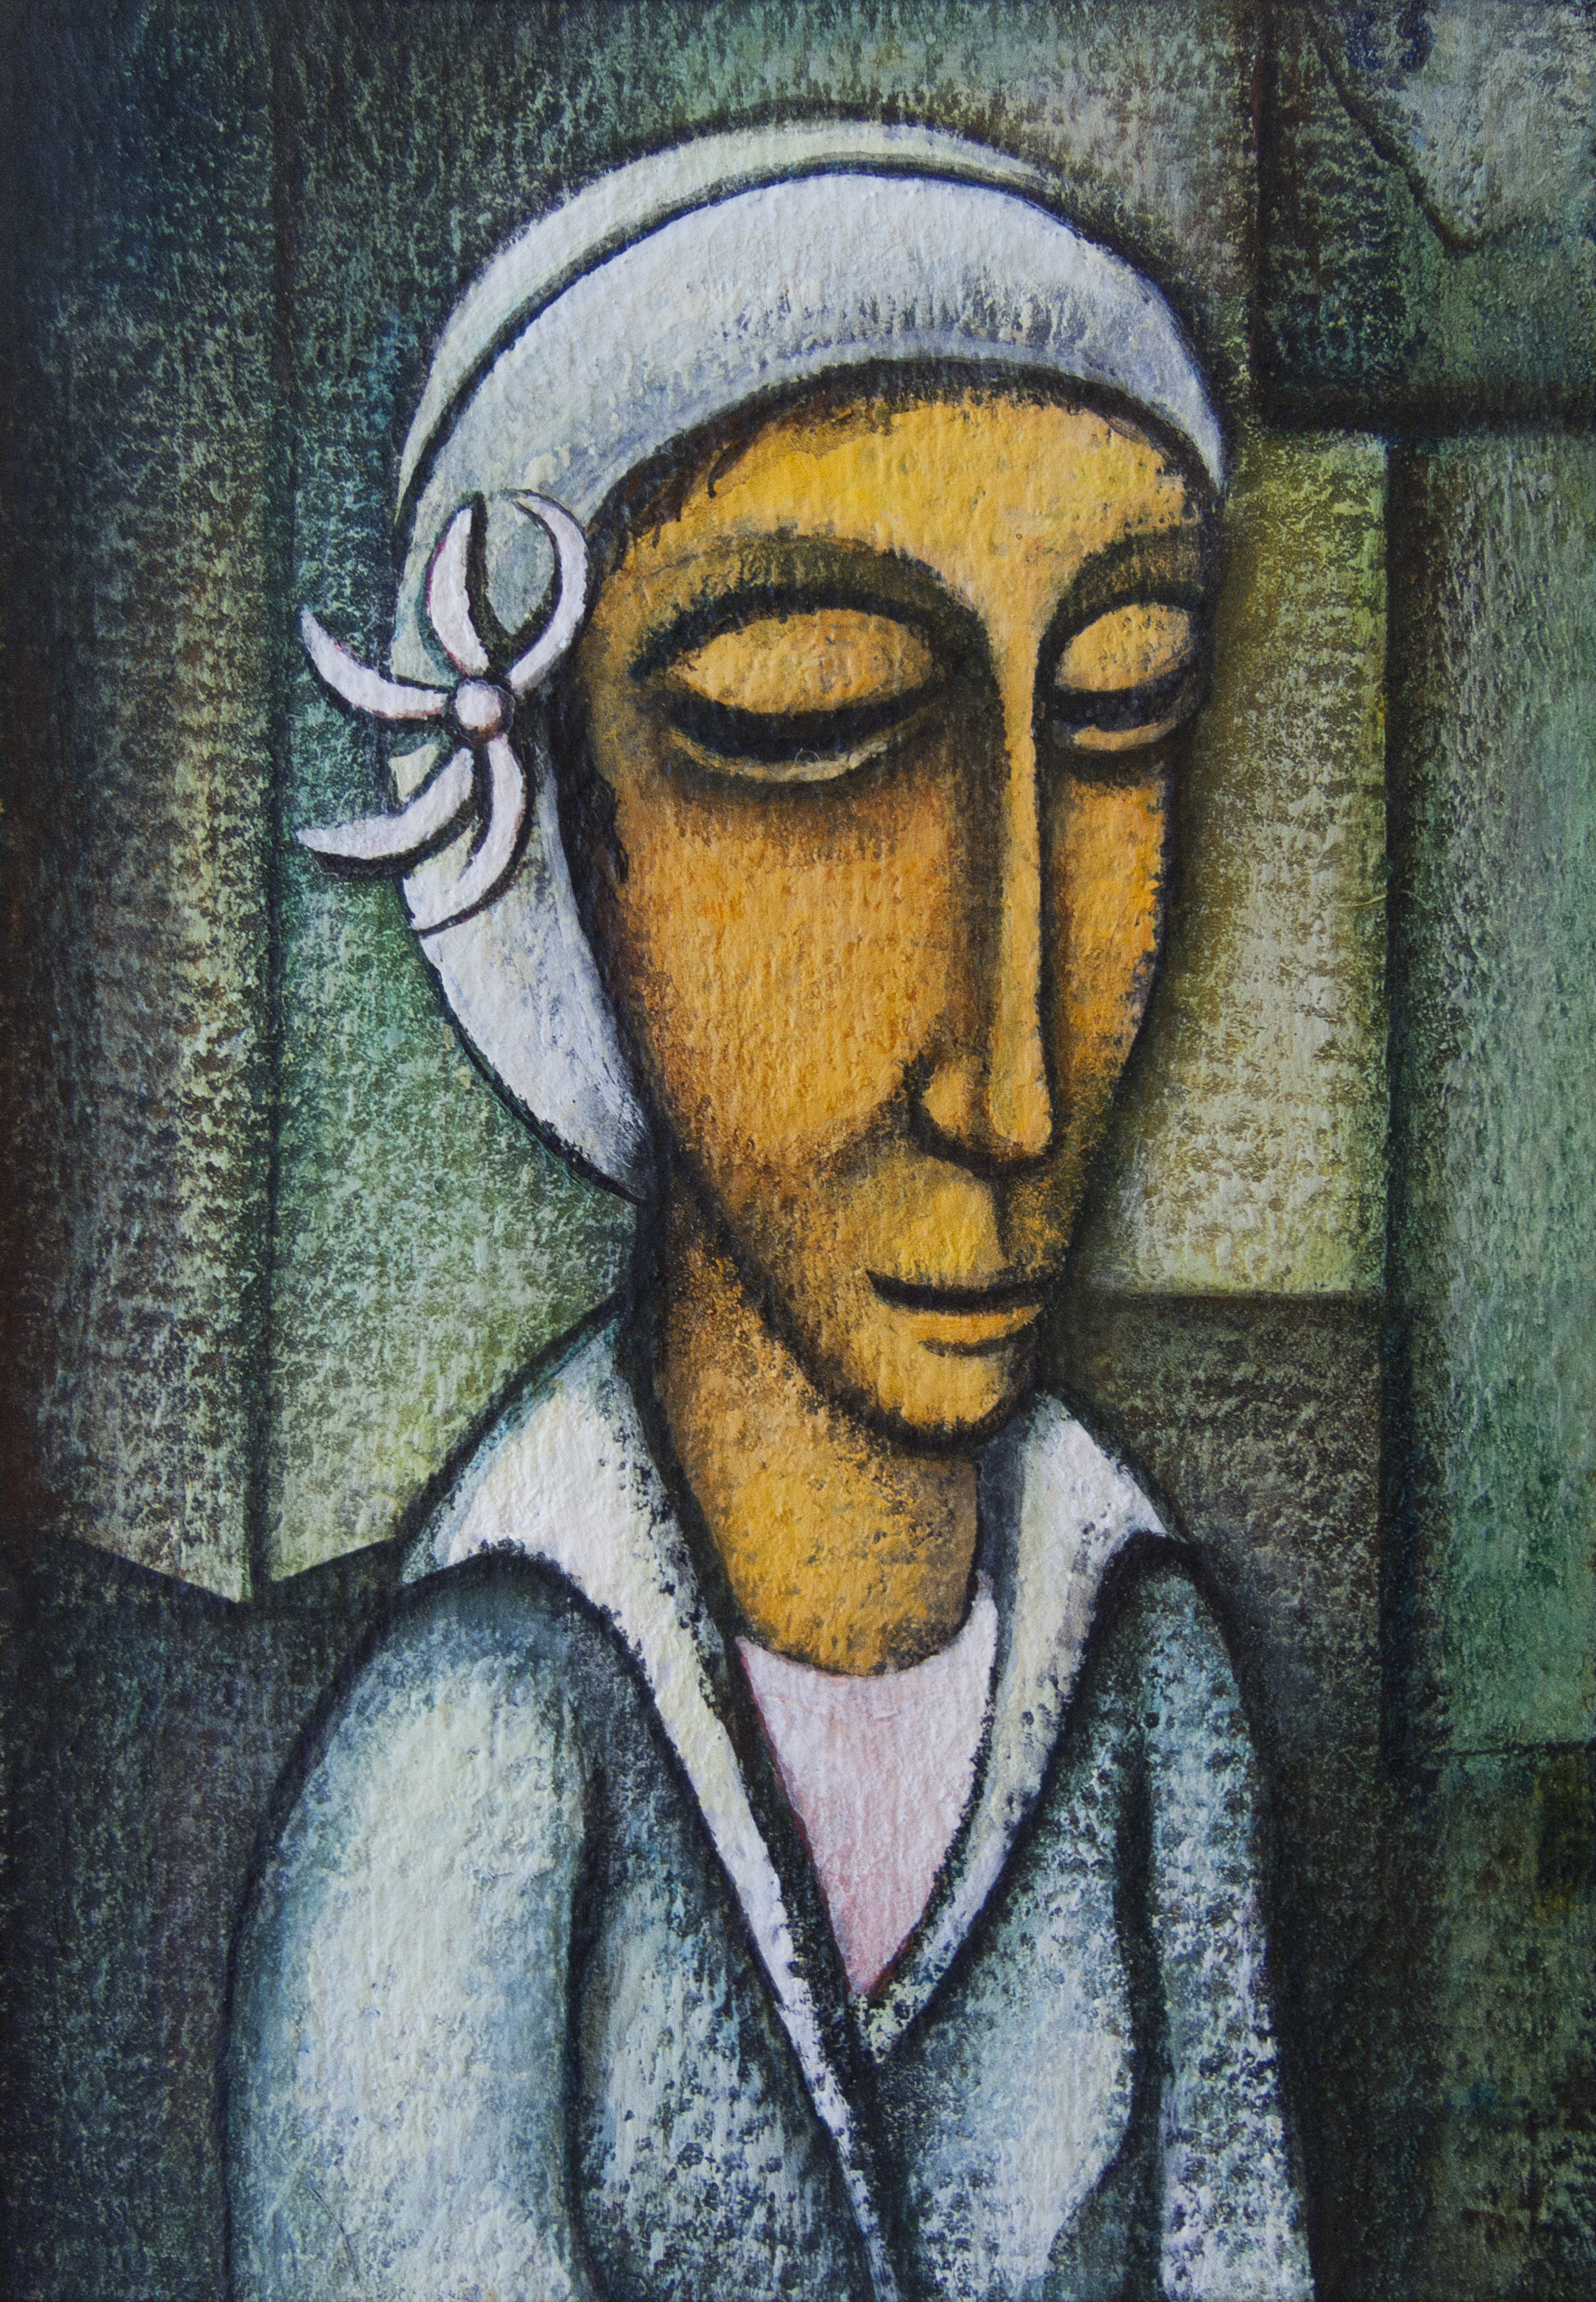 Untitled (Woman in a White Headdress)